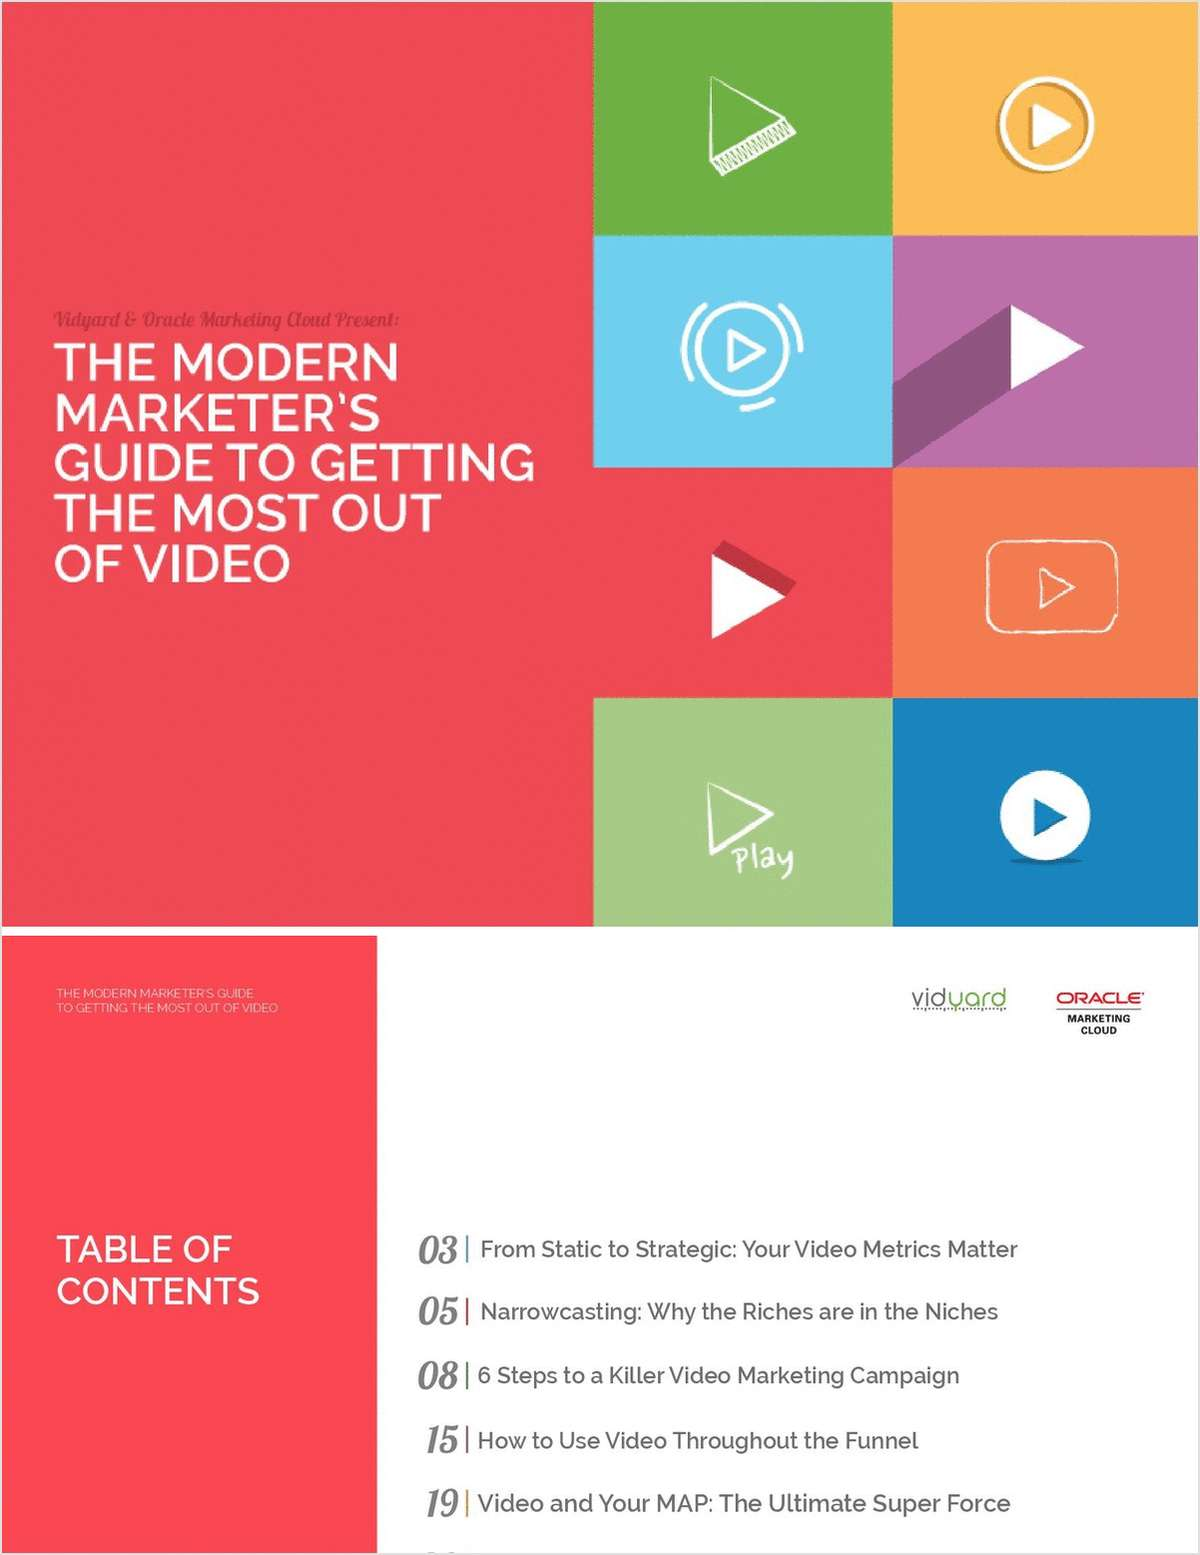 The Modern Marketer's Guide to Getting the Most Out of Video